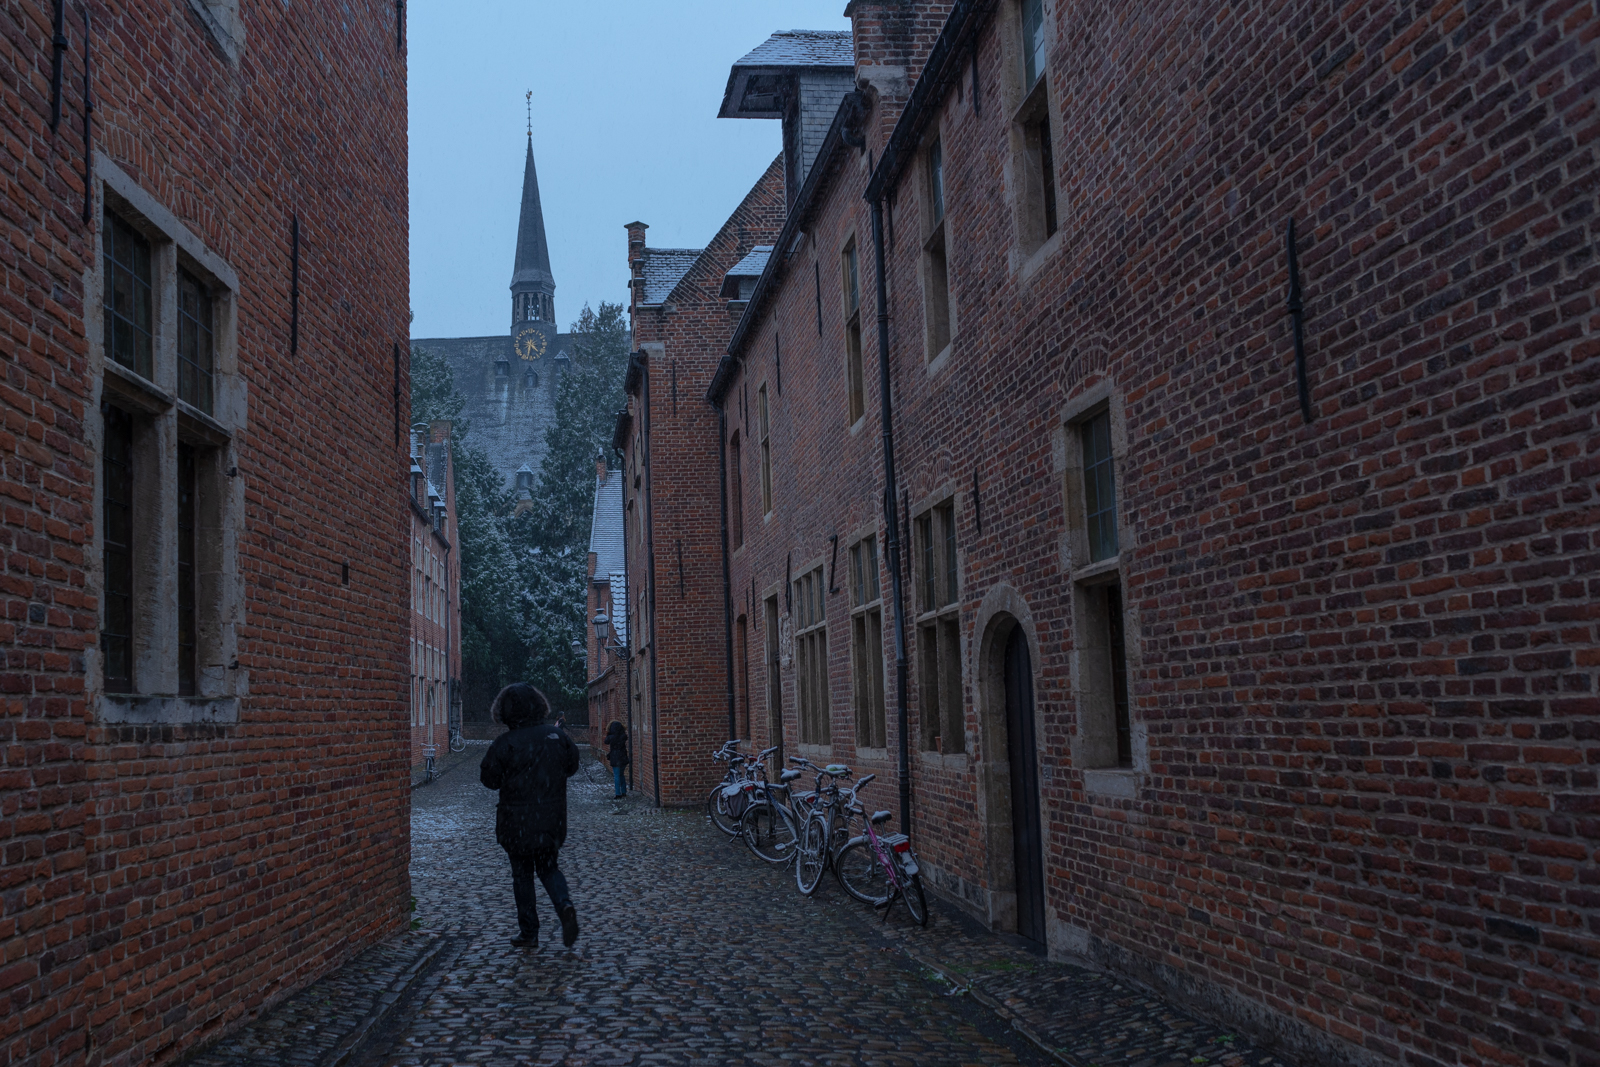 Person walking in a black jacket on a gray snowy day in the Begijnhof of Leuven, Belgium